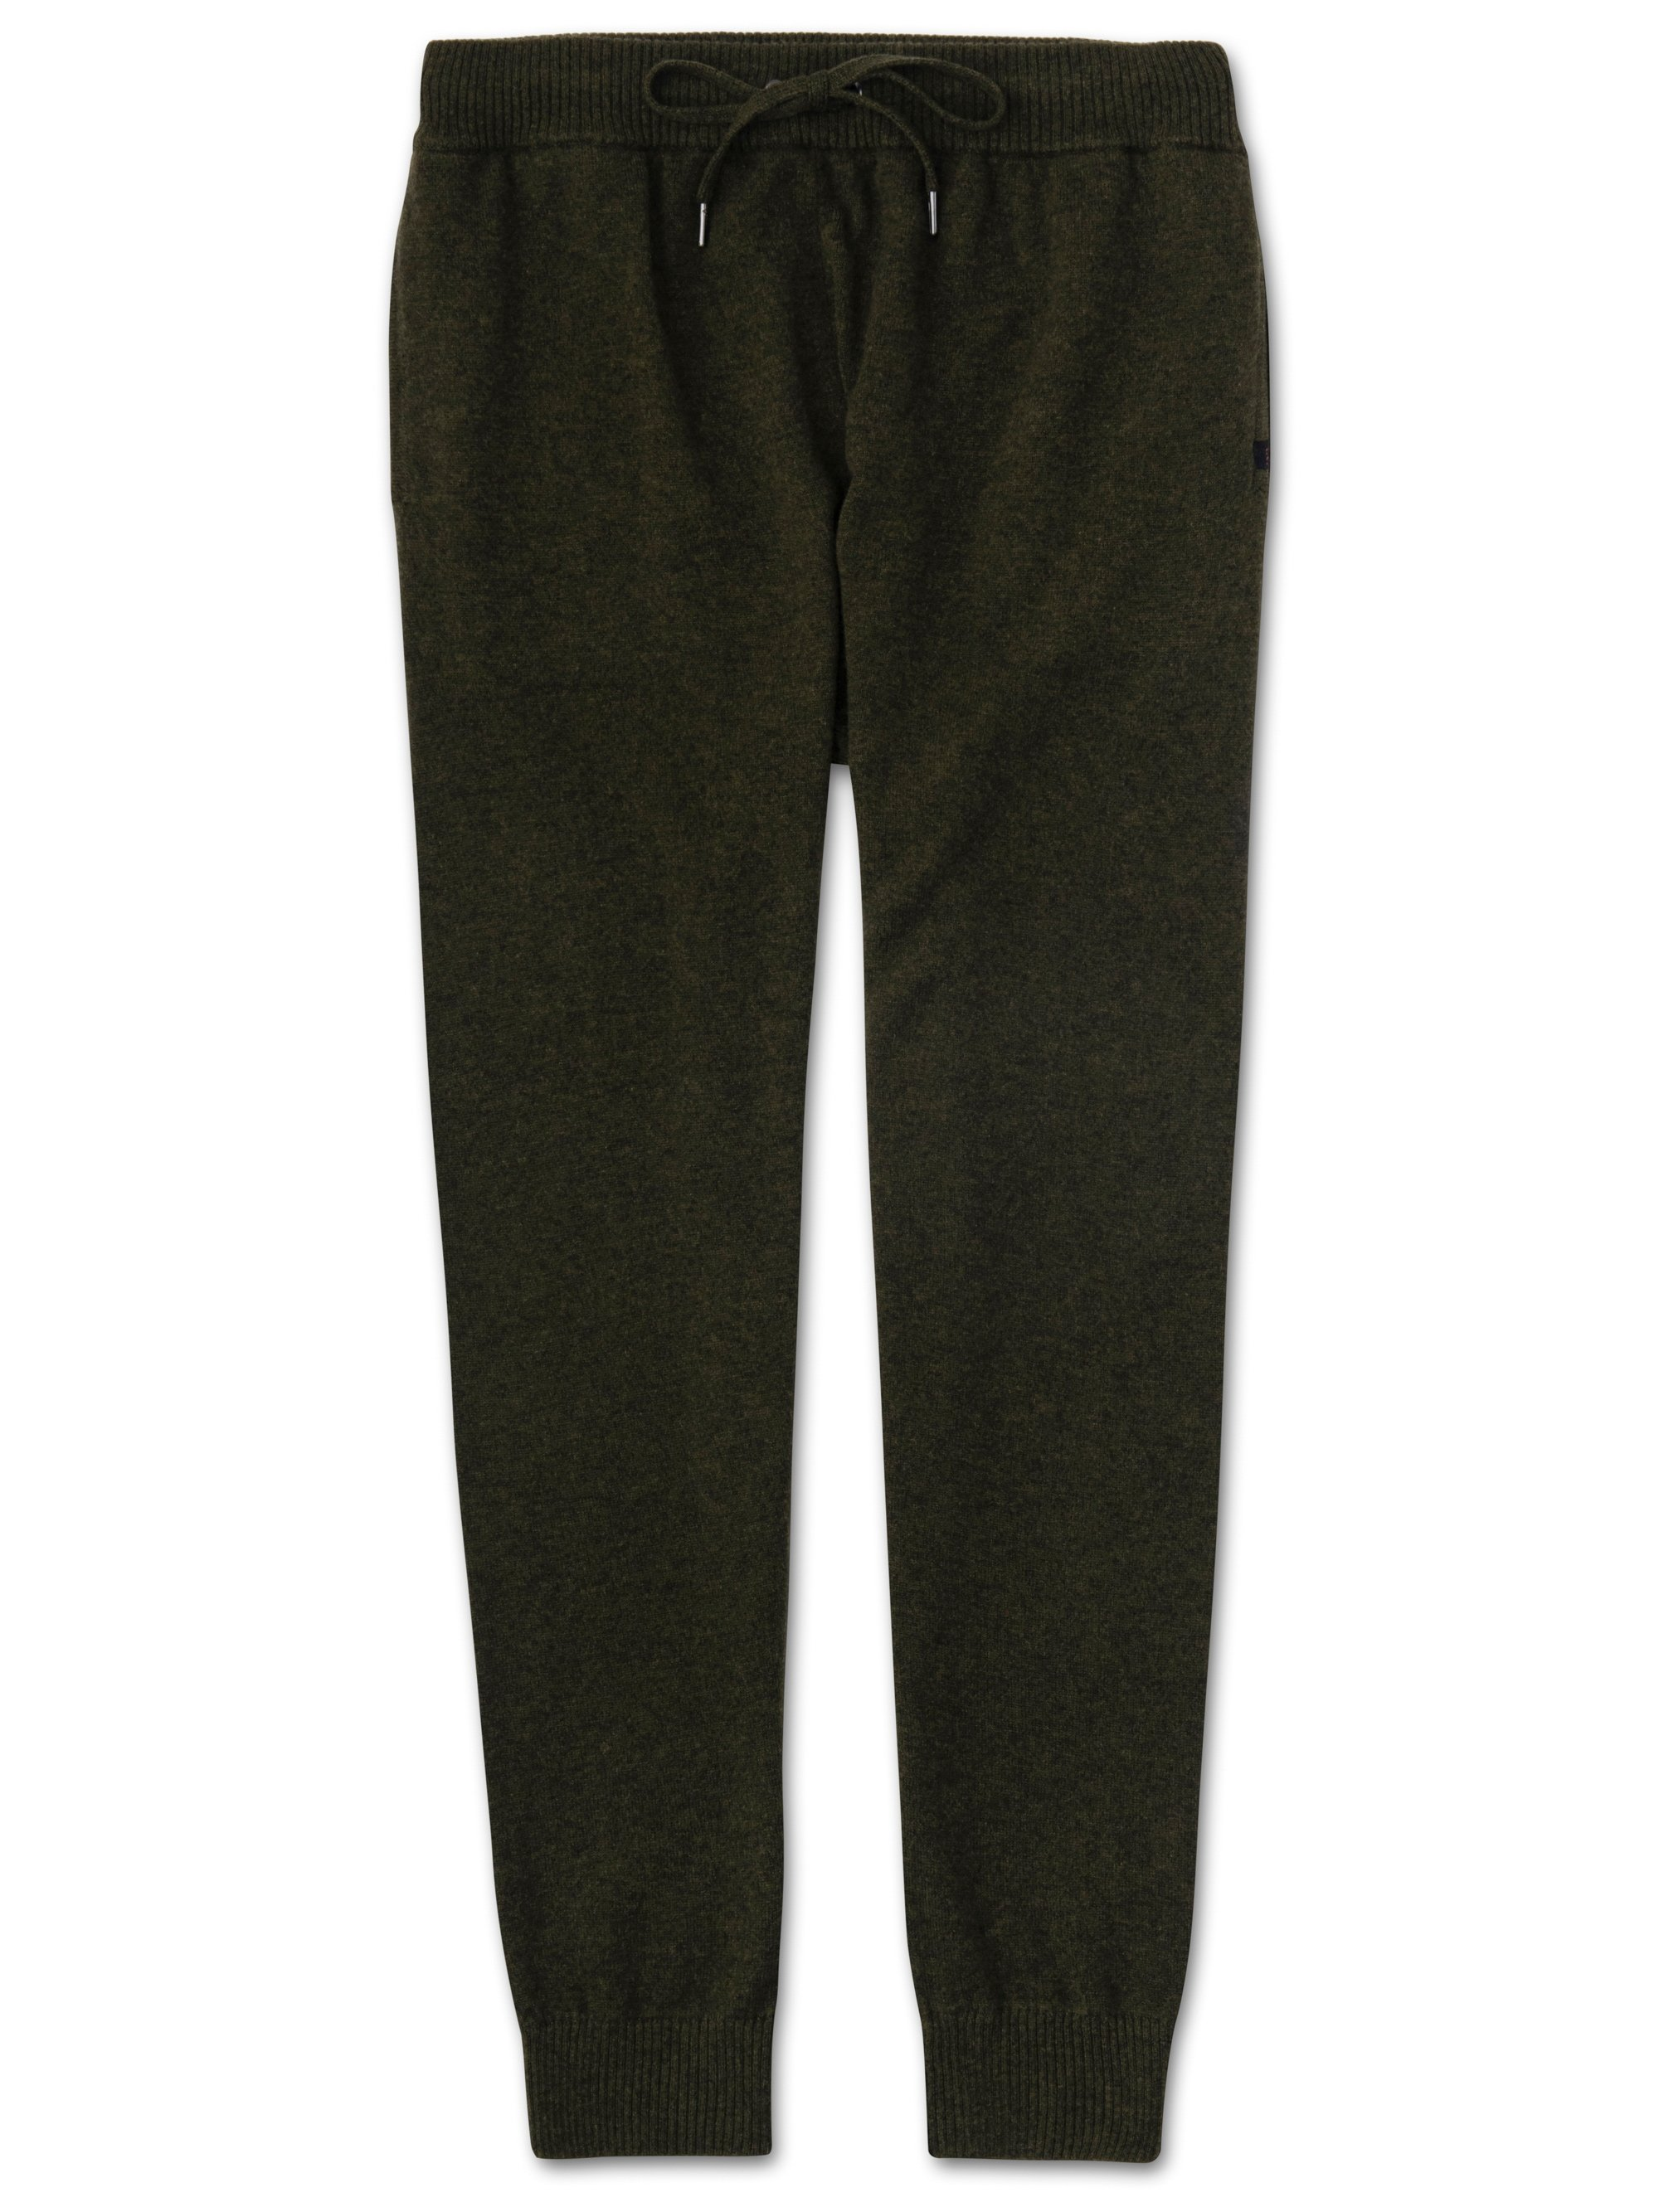 Men's Cashmere Track Pants Finley 3 Pure Cashmere Green